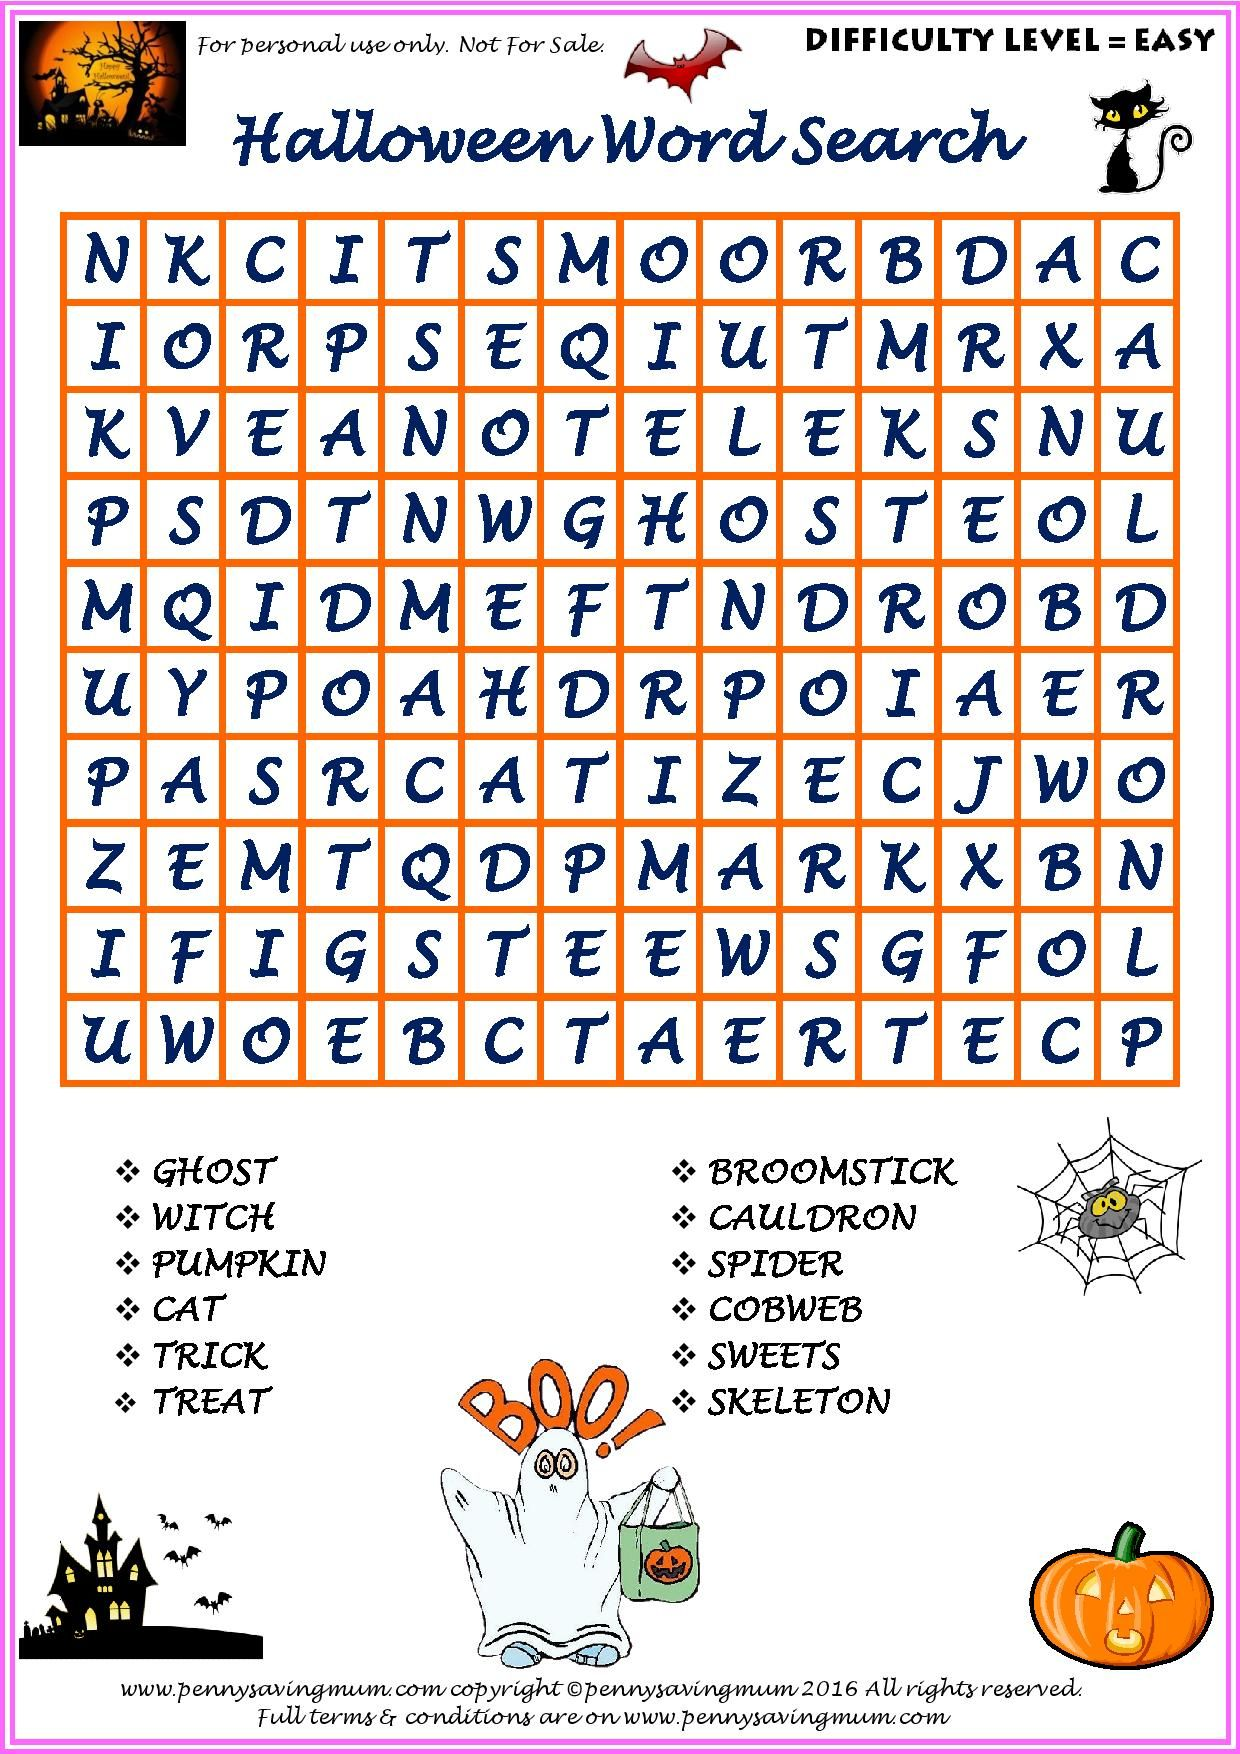 Word Search Halloween Easy Version